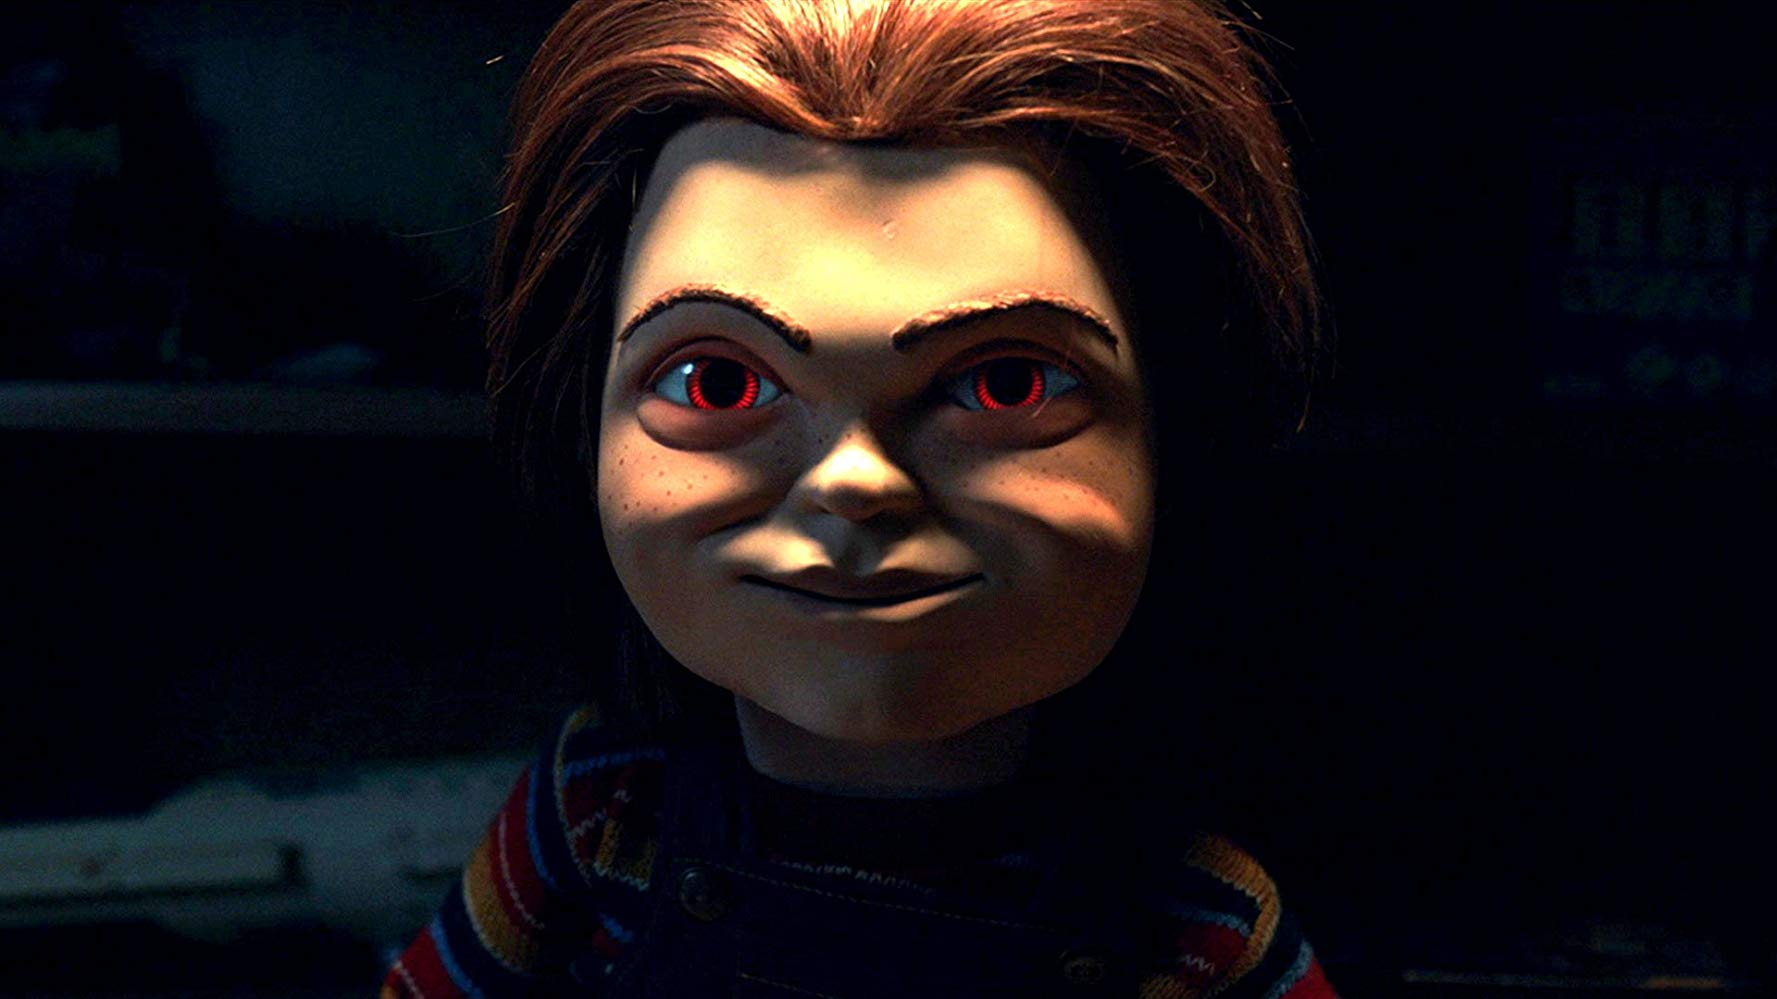 The Battle of 2 Horrors 'Child's Play' VS. 'Annabelle Comes Home'